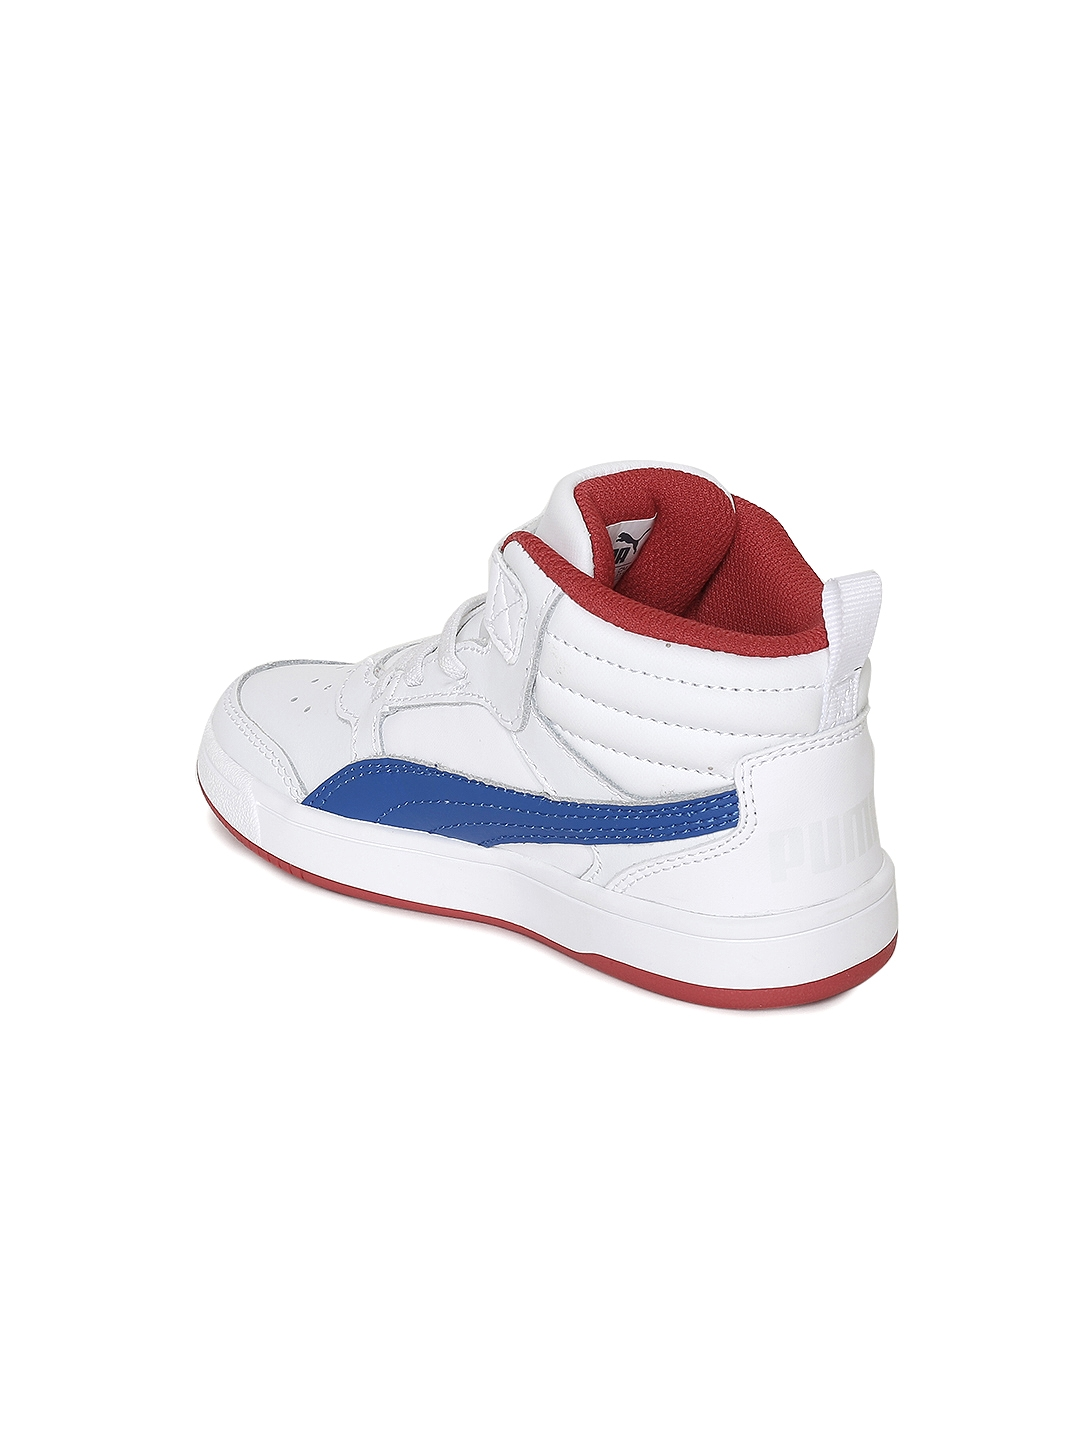 724264dc5ccc ... Puma Boys White Solid Rebound Street v2 L V Ps Solid Leather Mid-Top  Sneakers differently ...